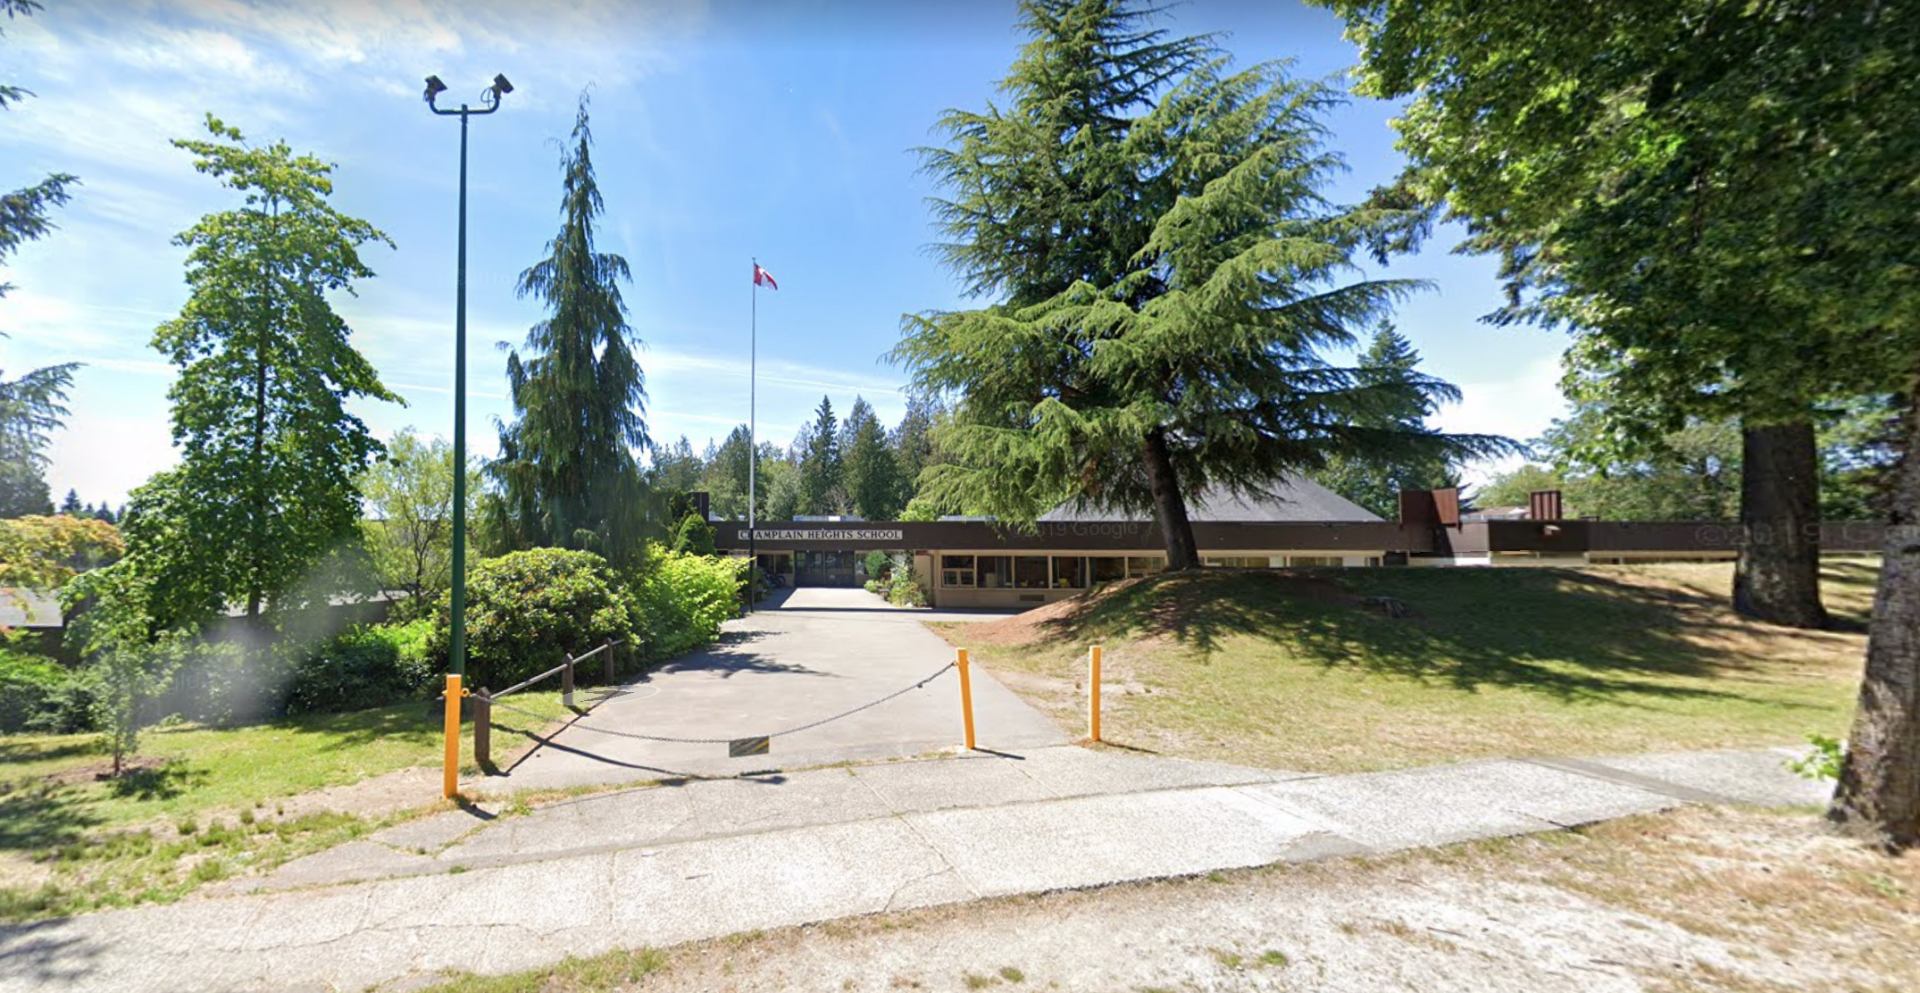 Two more Vancouver schools named for coronavirus exposure